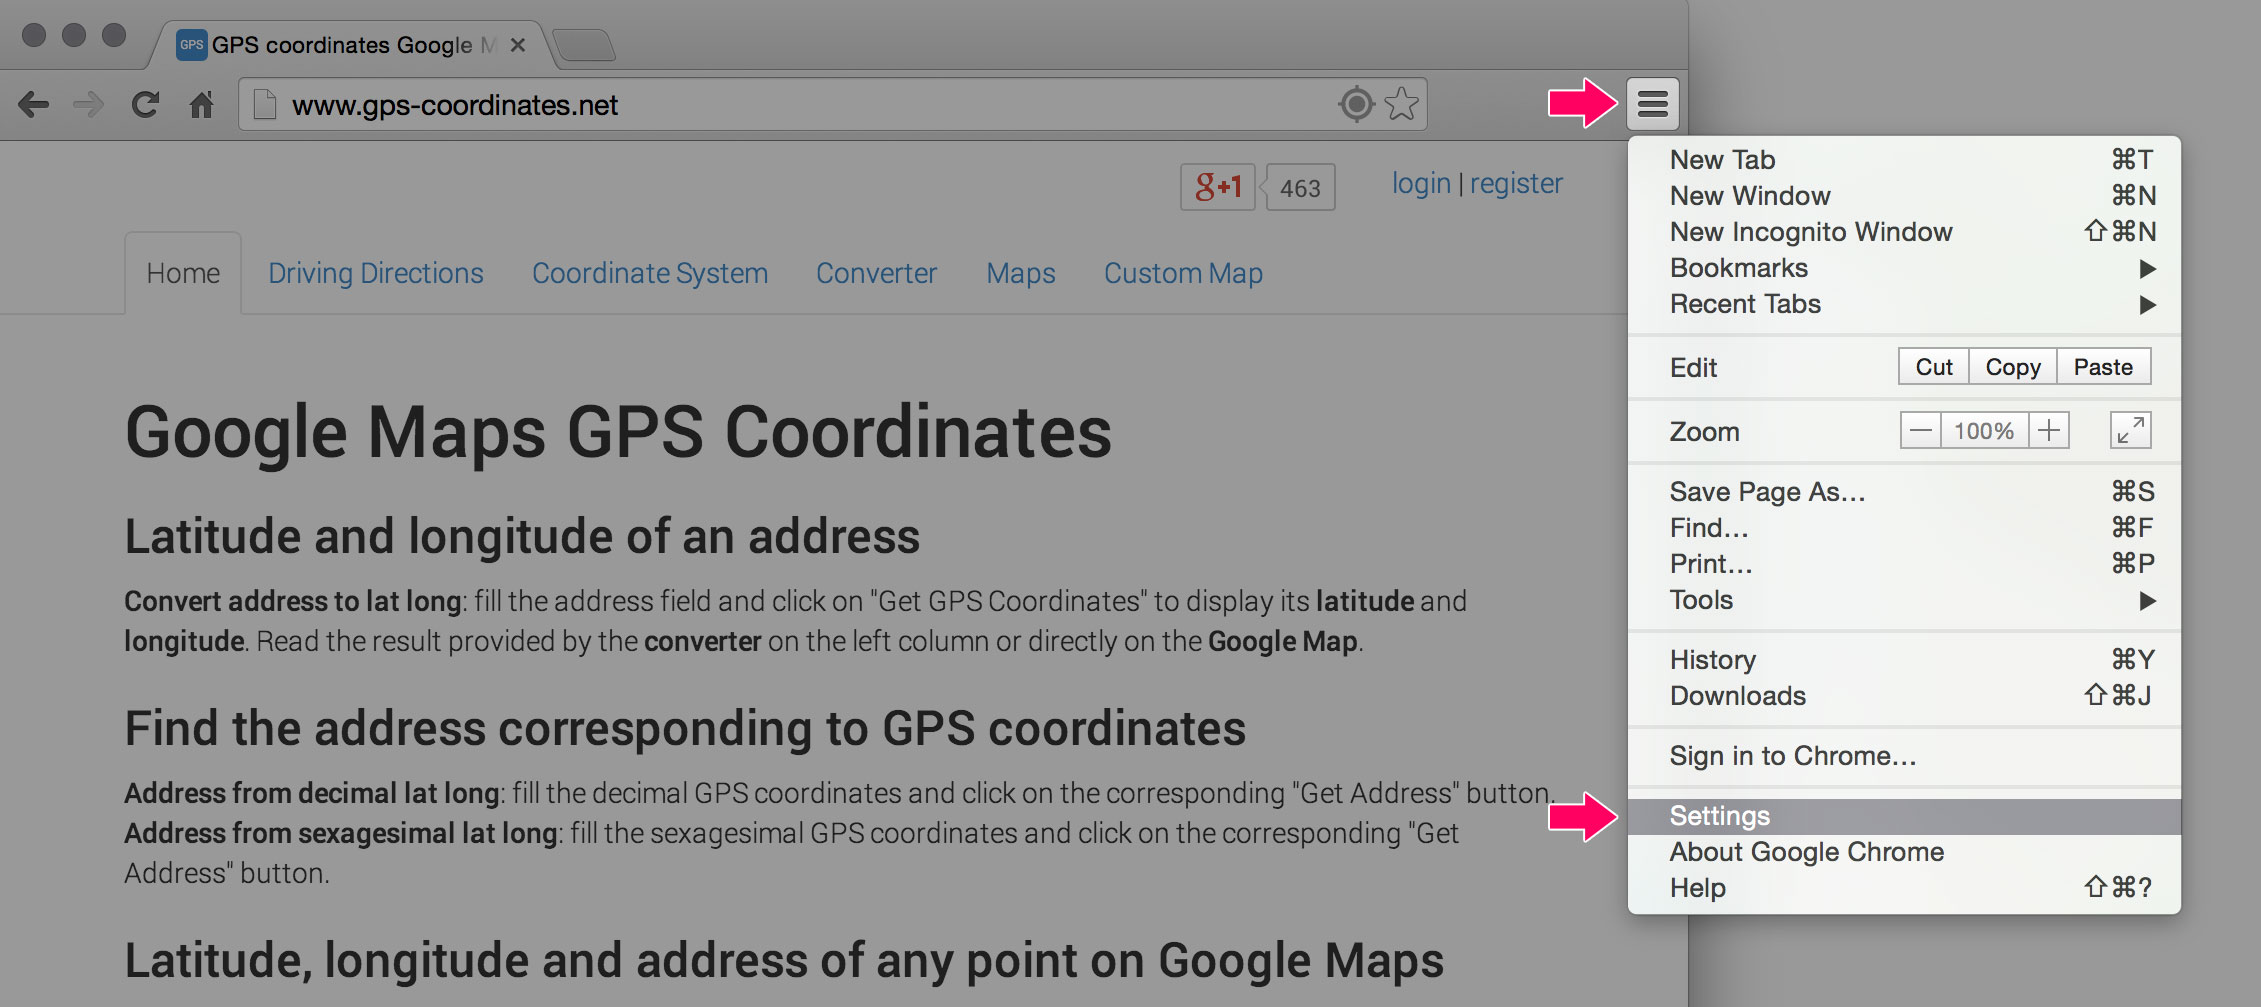 How to Enable Geolocation